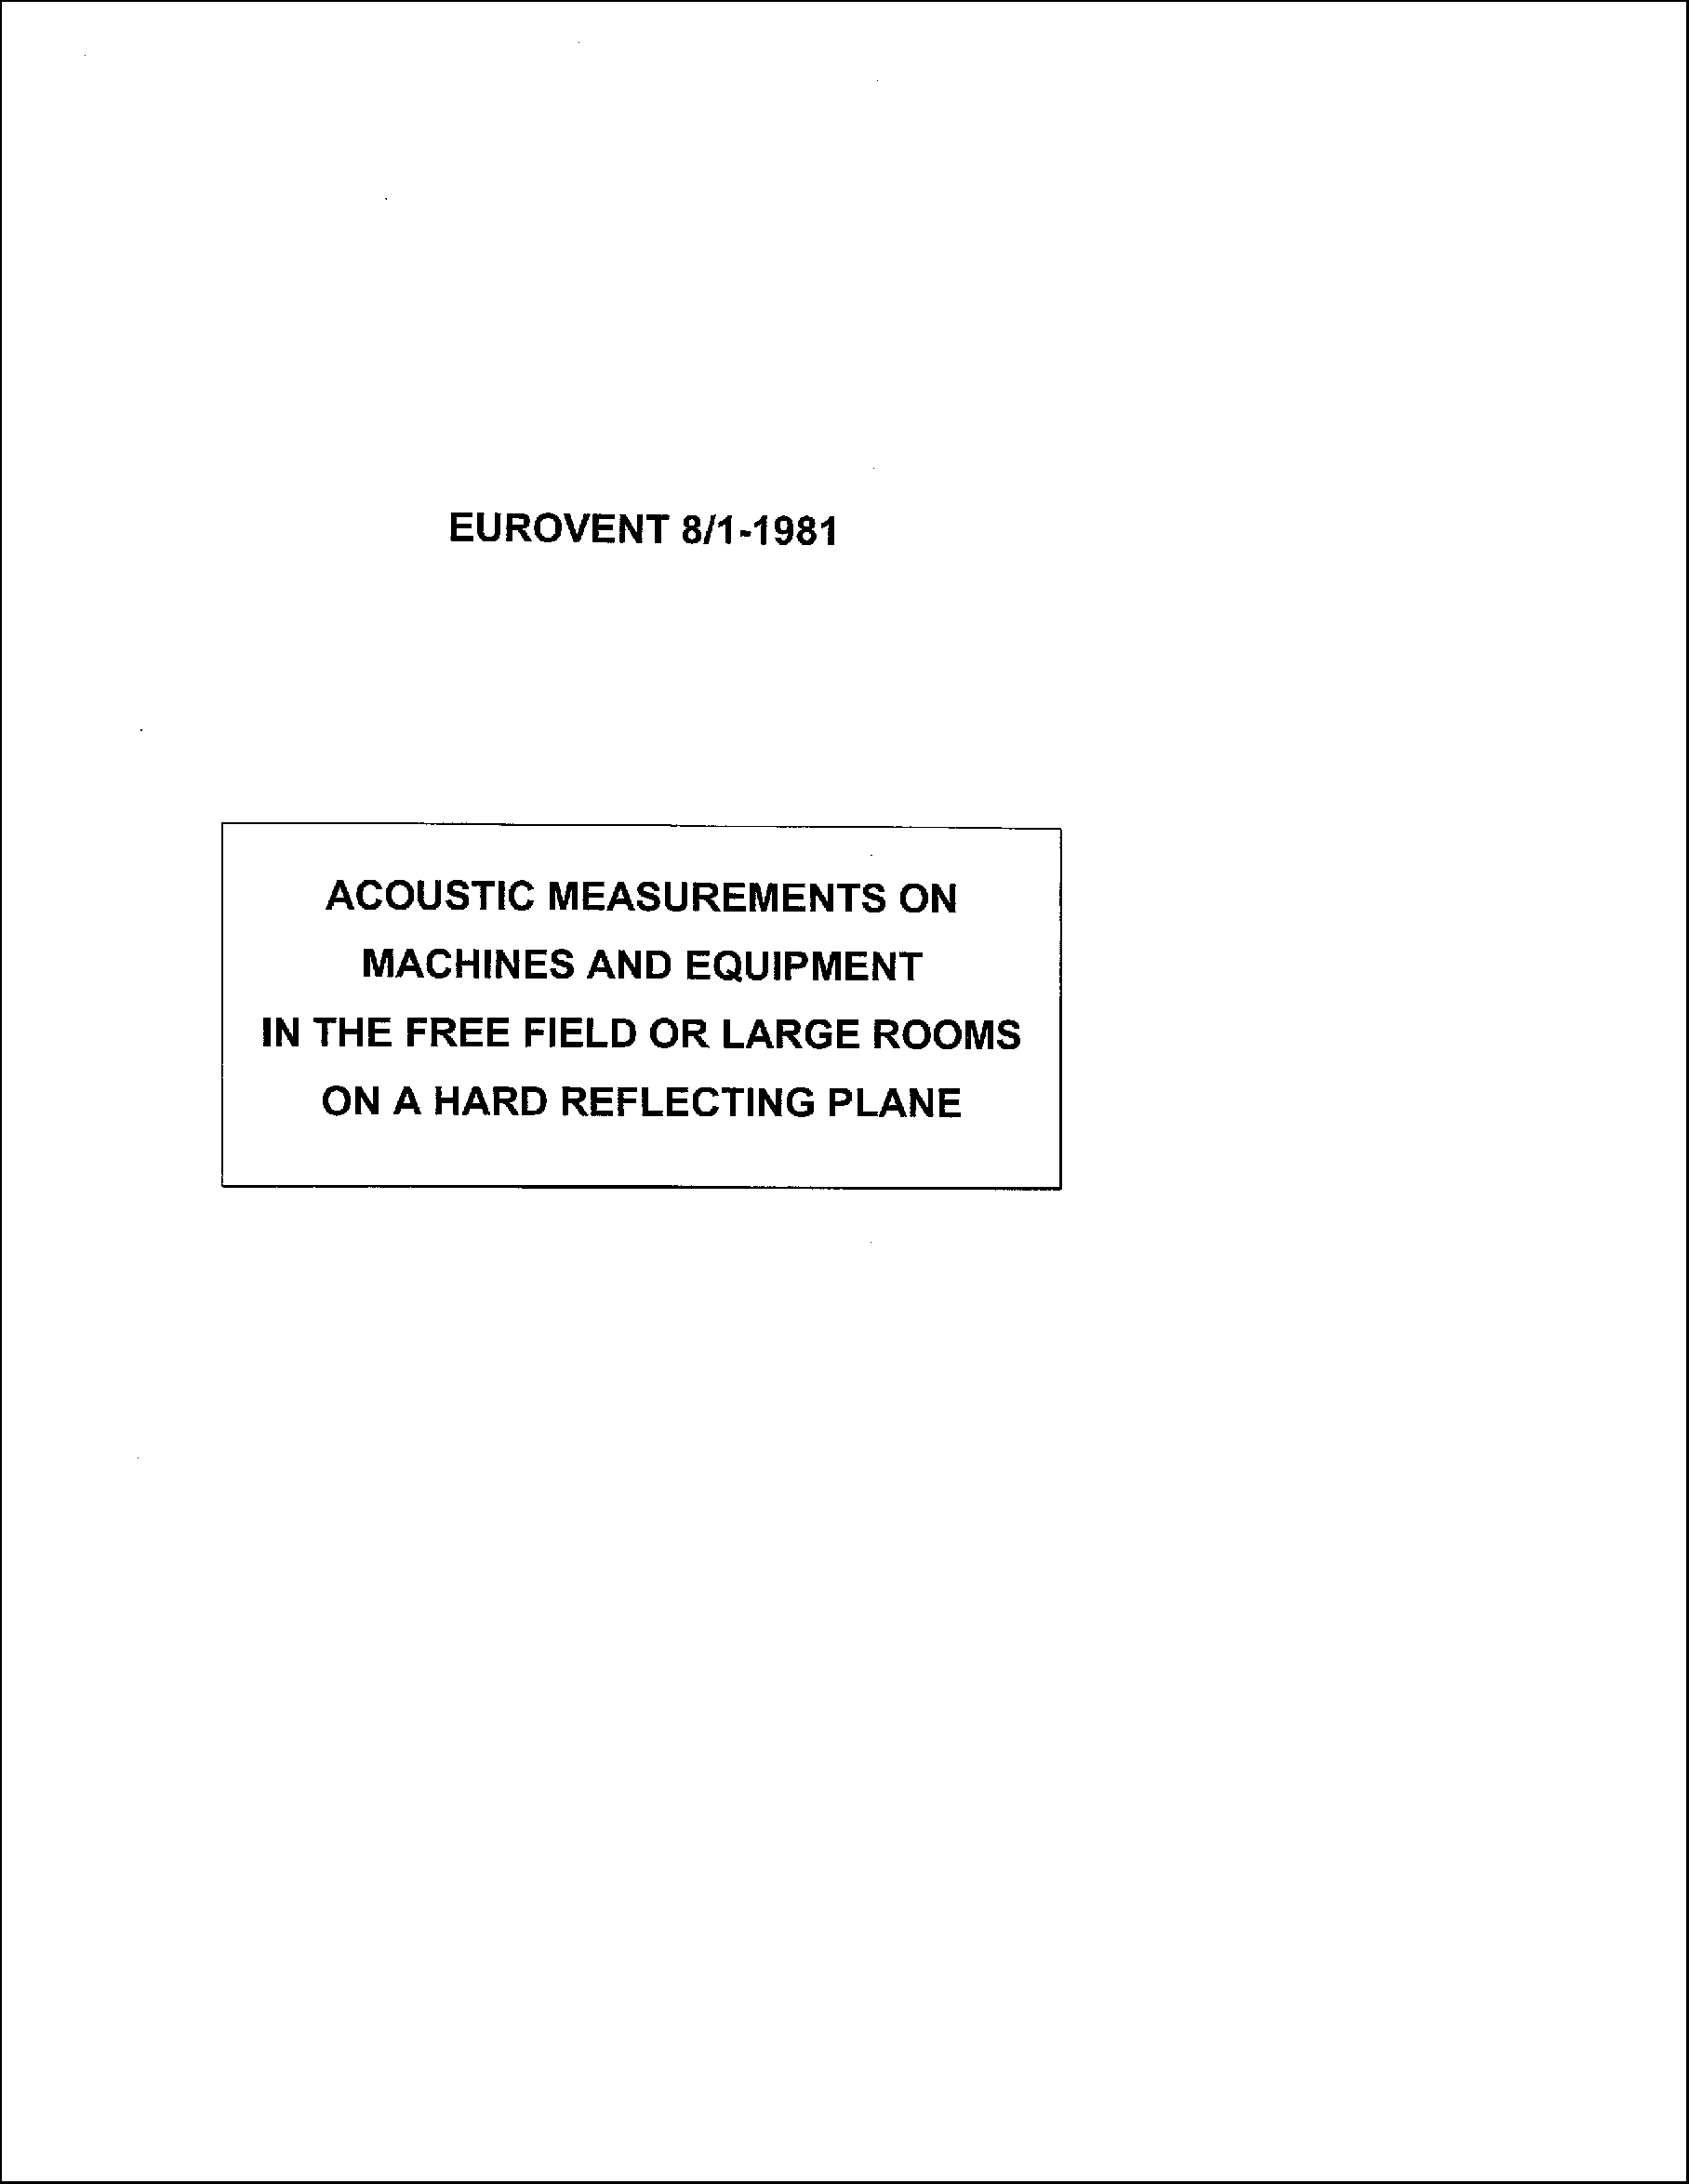 1981 - Acoustic measurements on machines and equipment